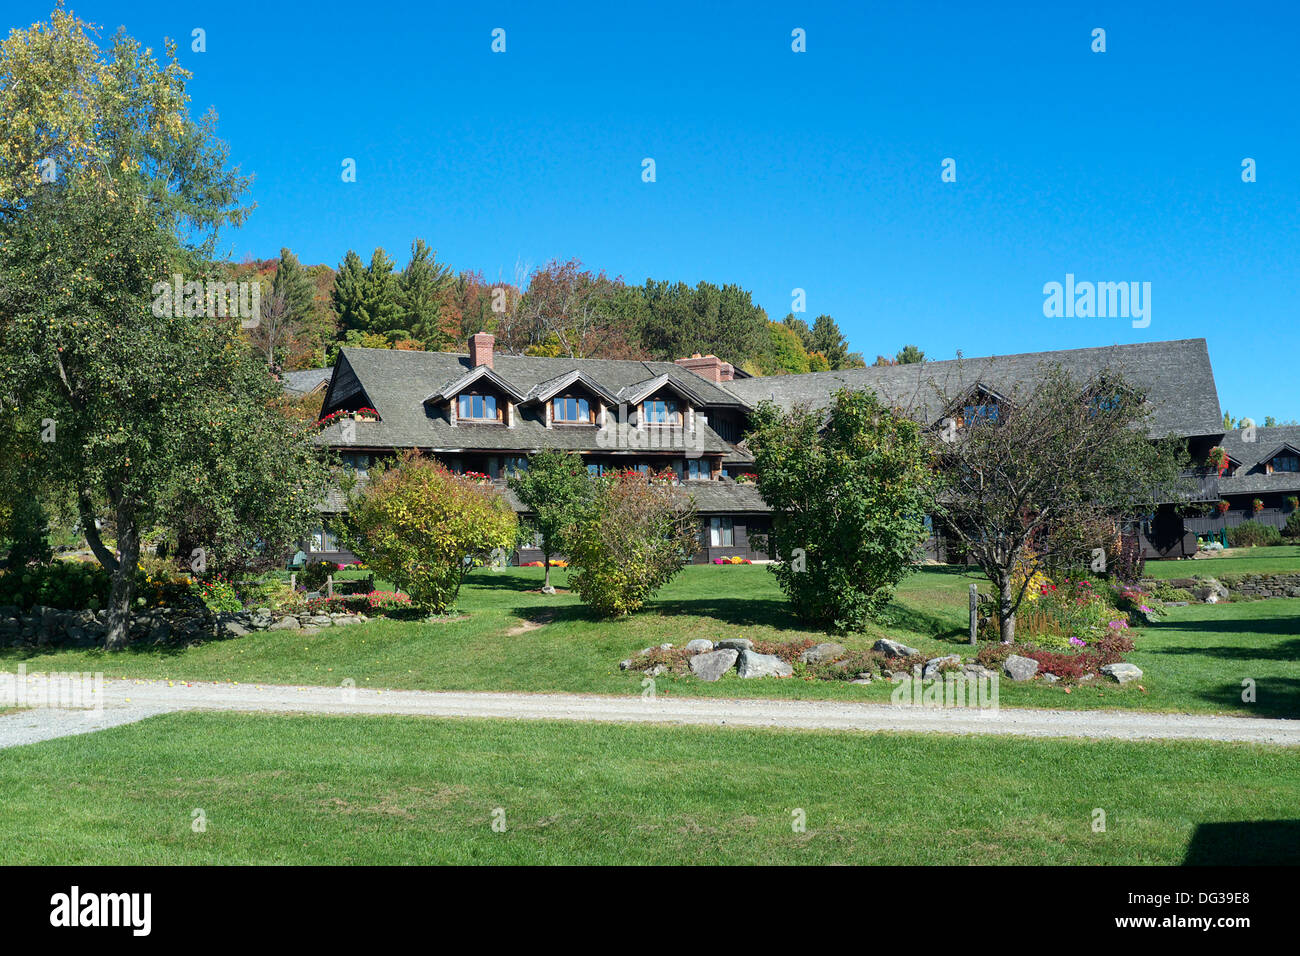 Trapp Family Lodge - Stowe, Vermont - Stock Image